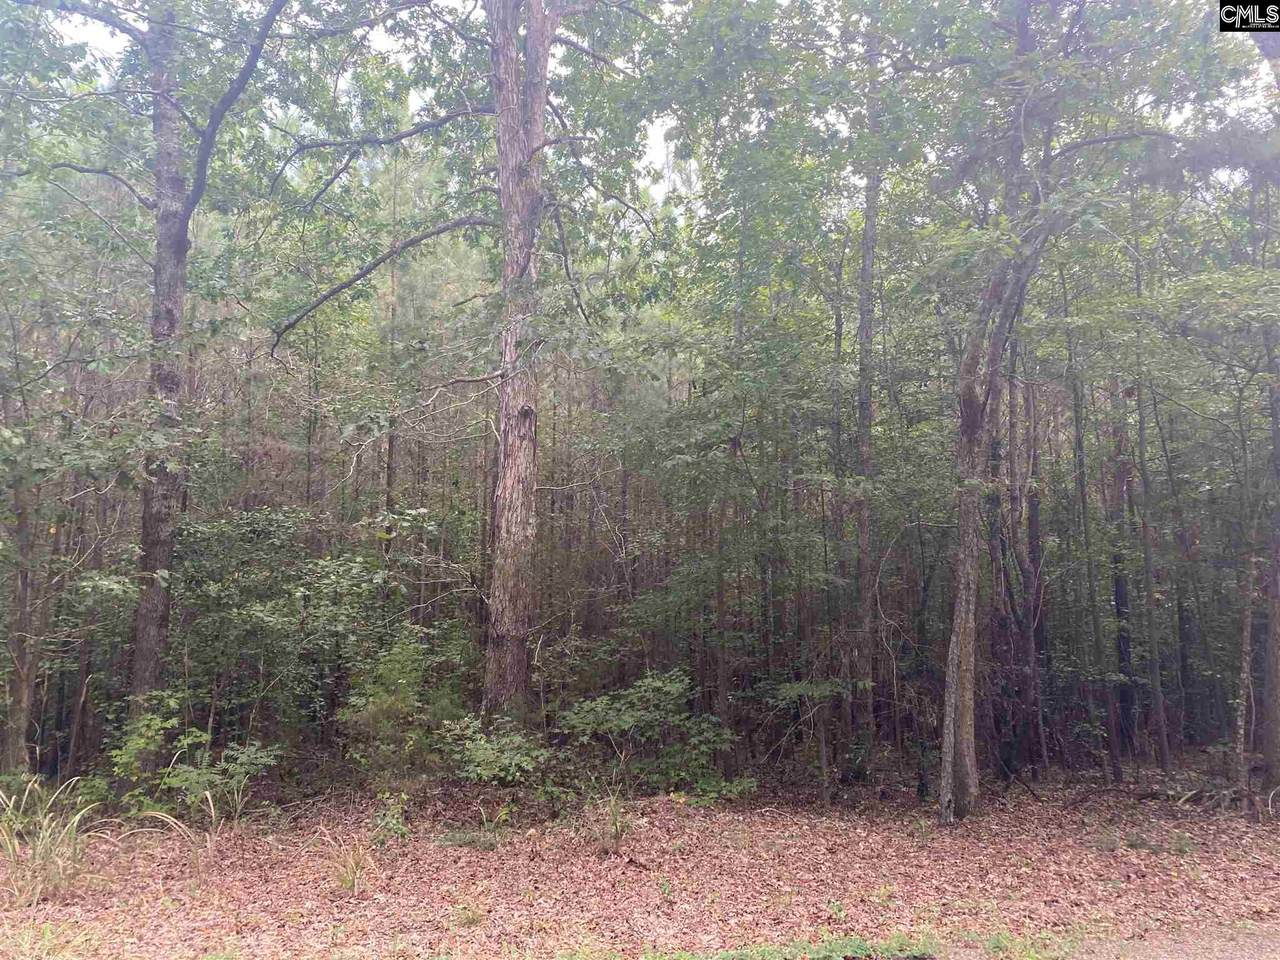 00 Kiblers Bridge Road Lot D - Photo 1